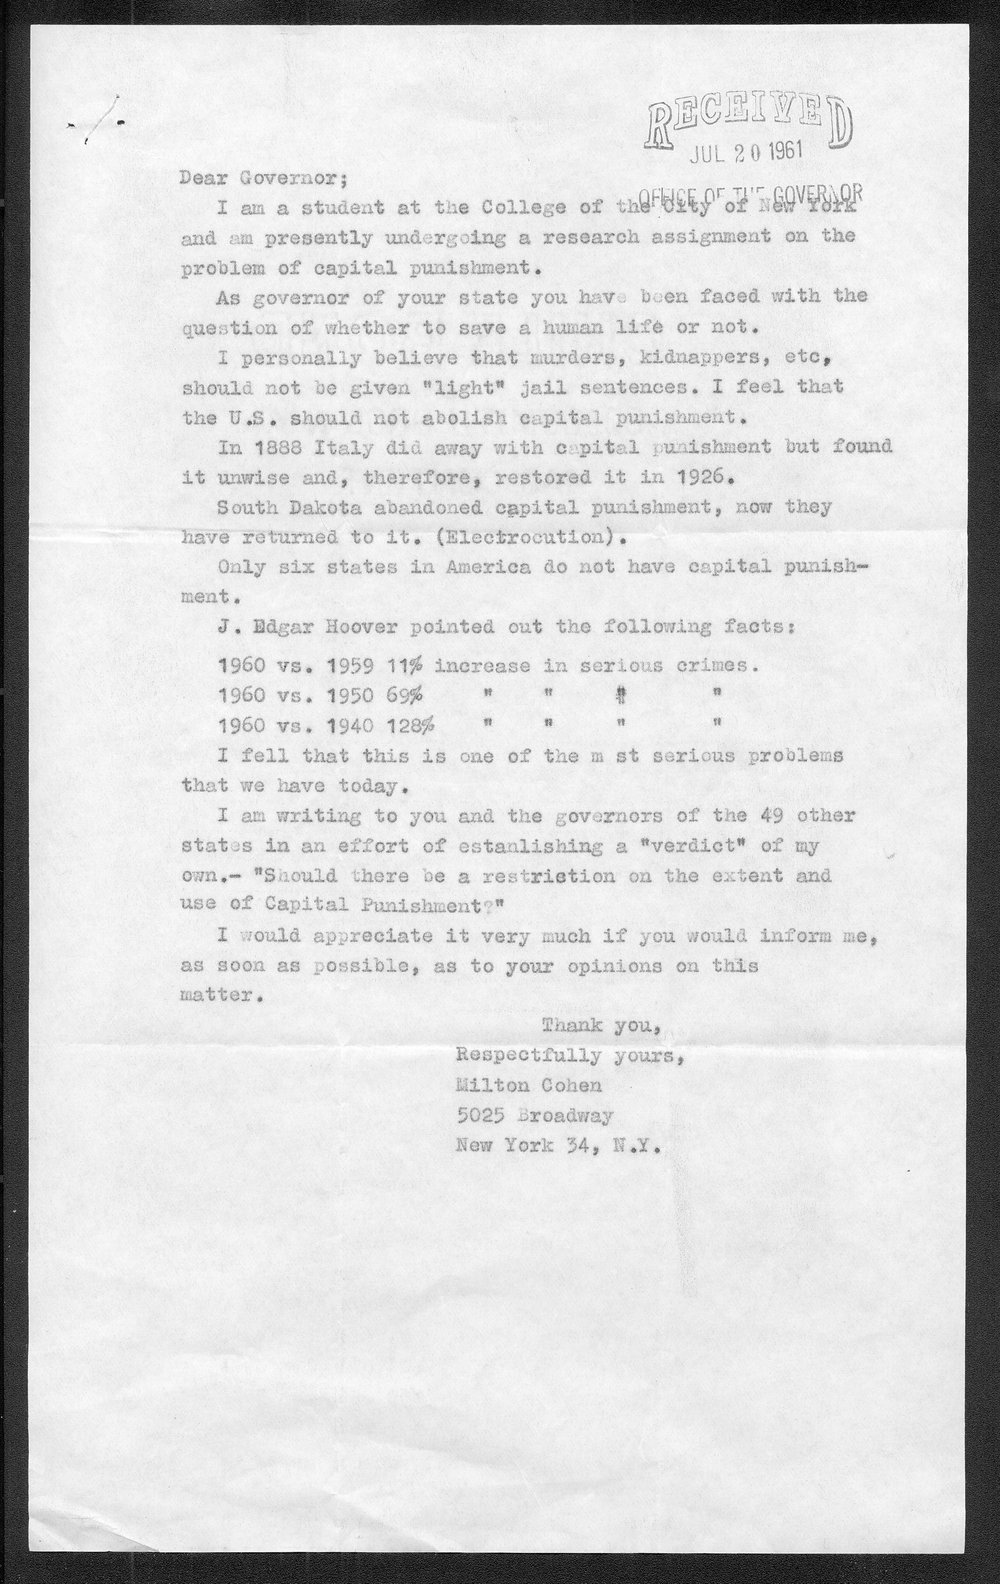 Governor John Anderson capital punishment received correspondence - 2